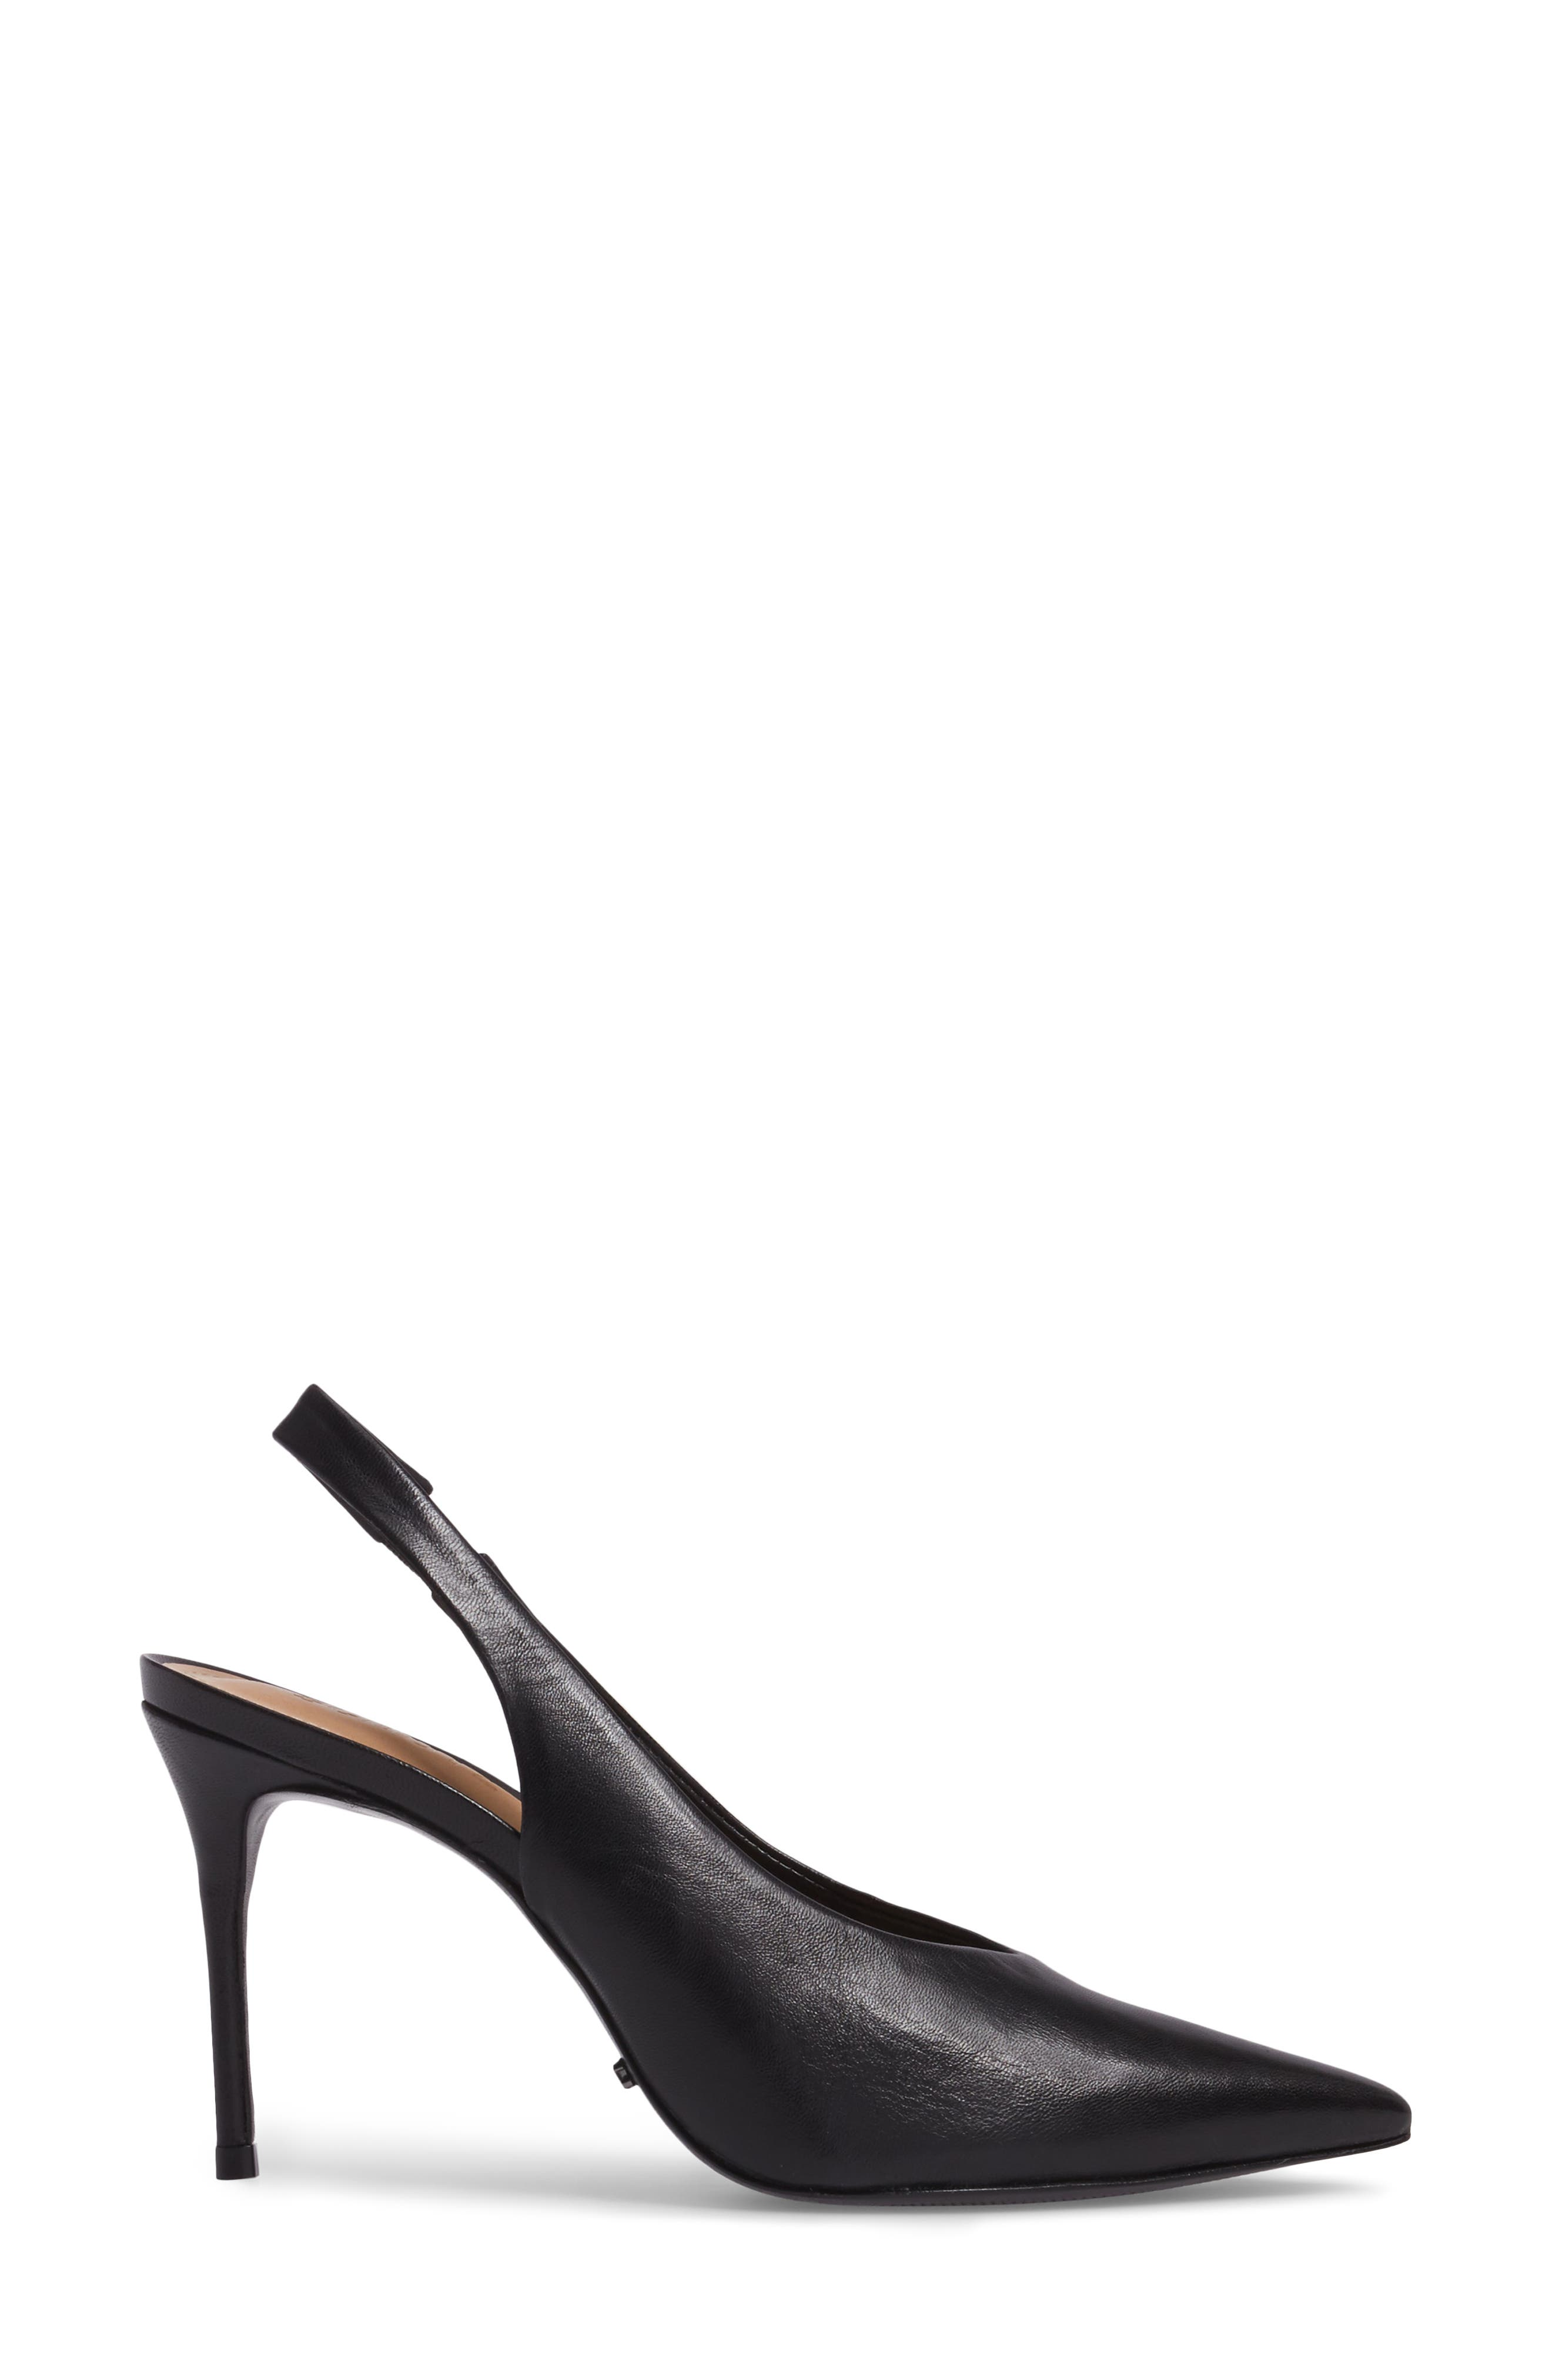 Phisalis Slingback Pump,                             Alternate thumbnail 3, color,                             001